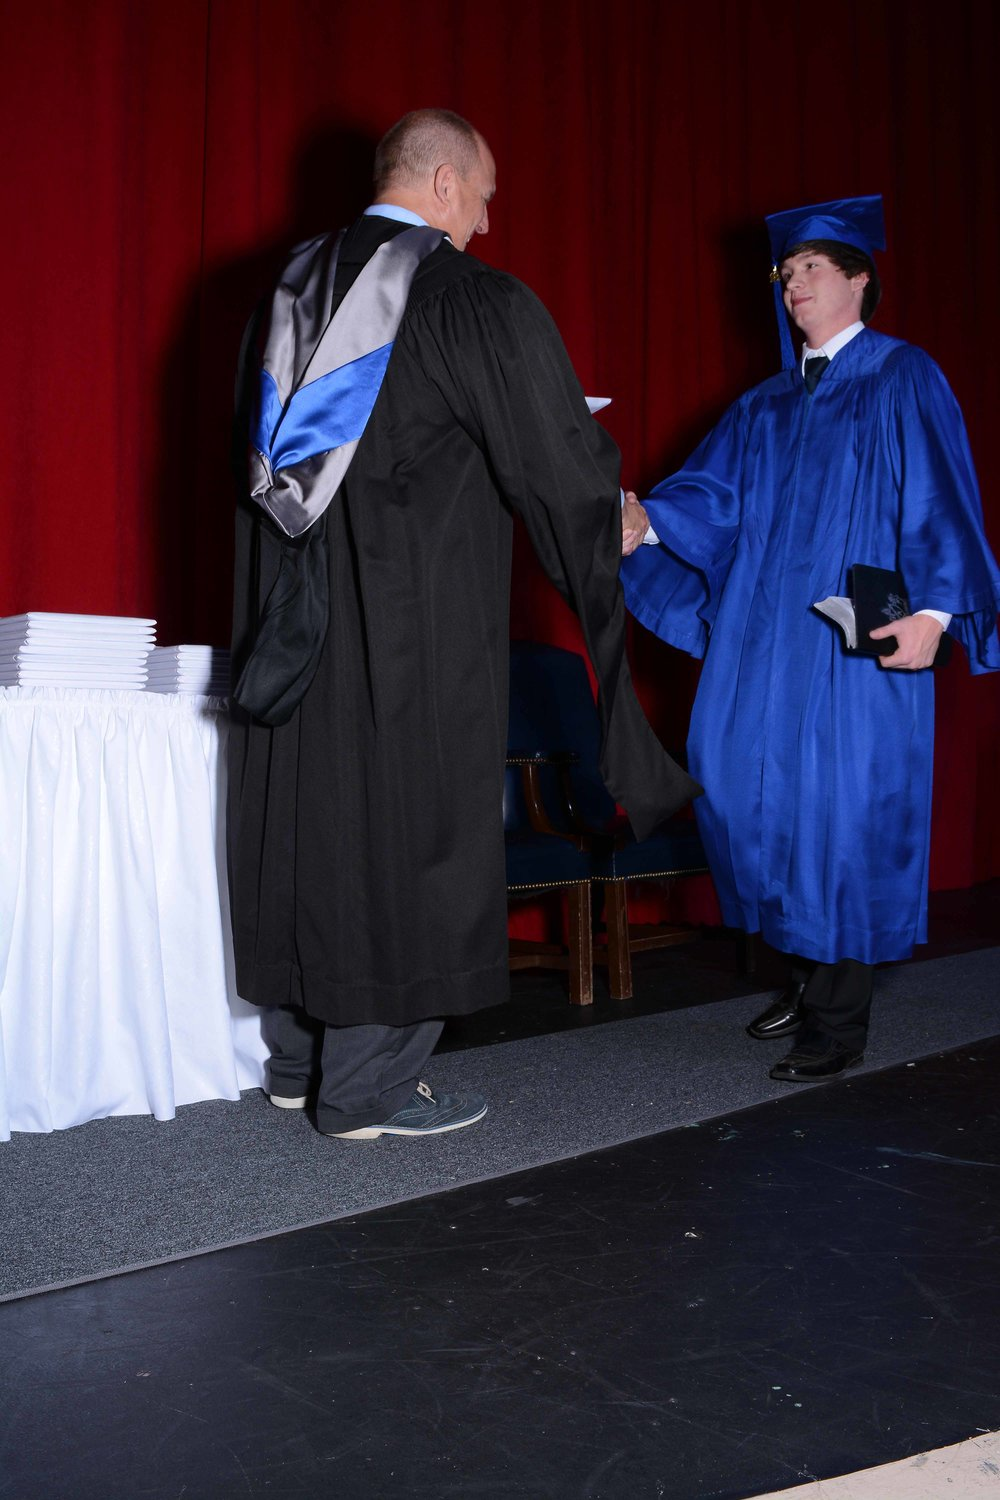 May14 Commencement118.jpg